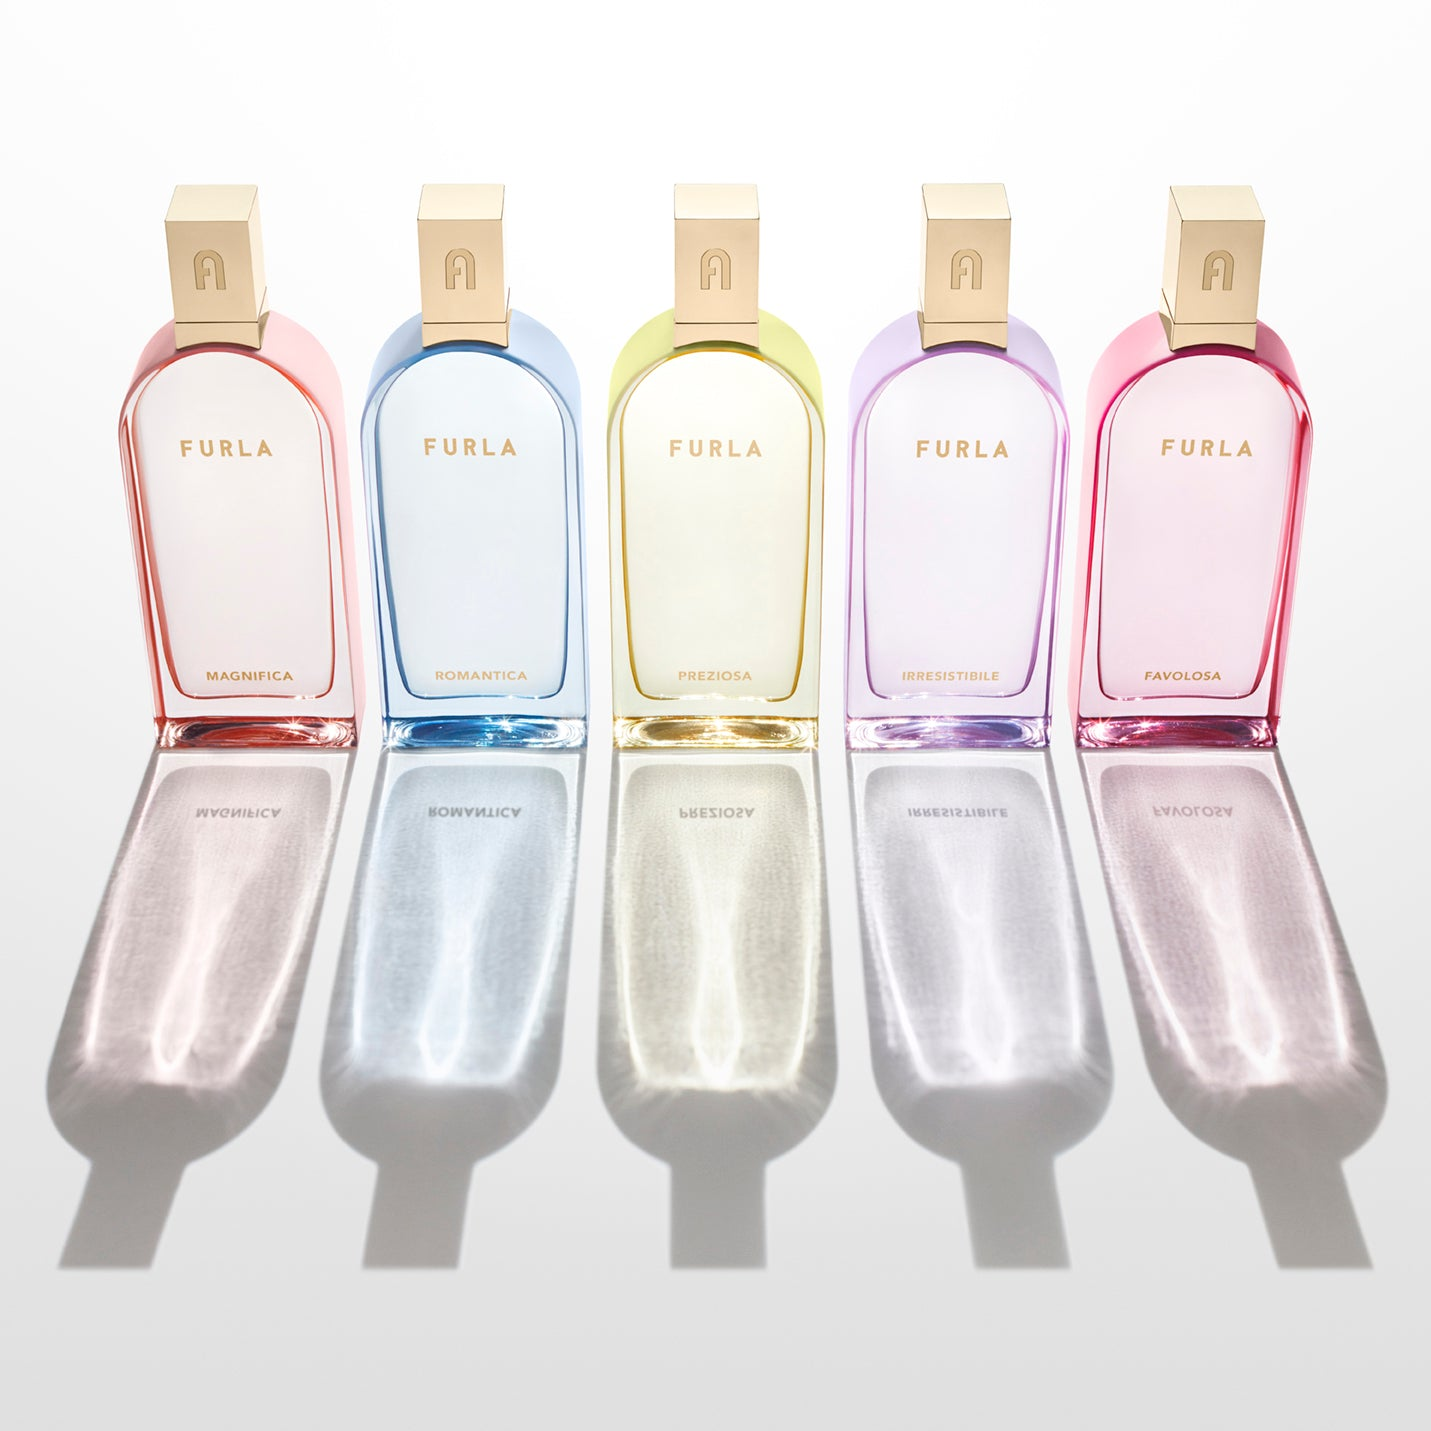 Furla: The New Fragrance Collection